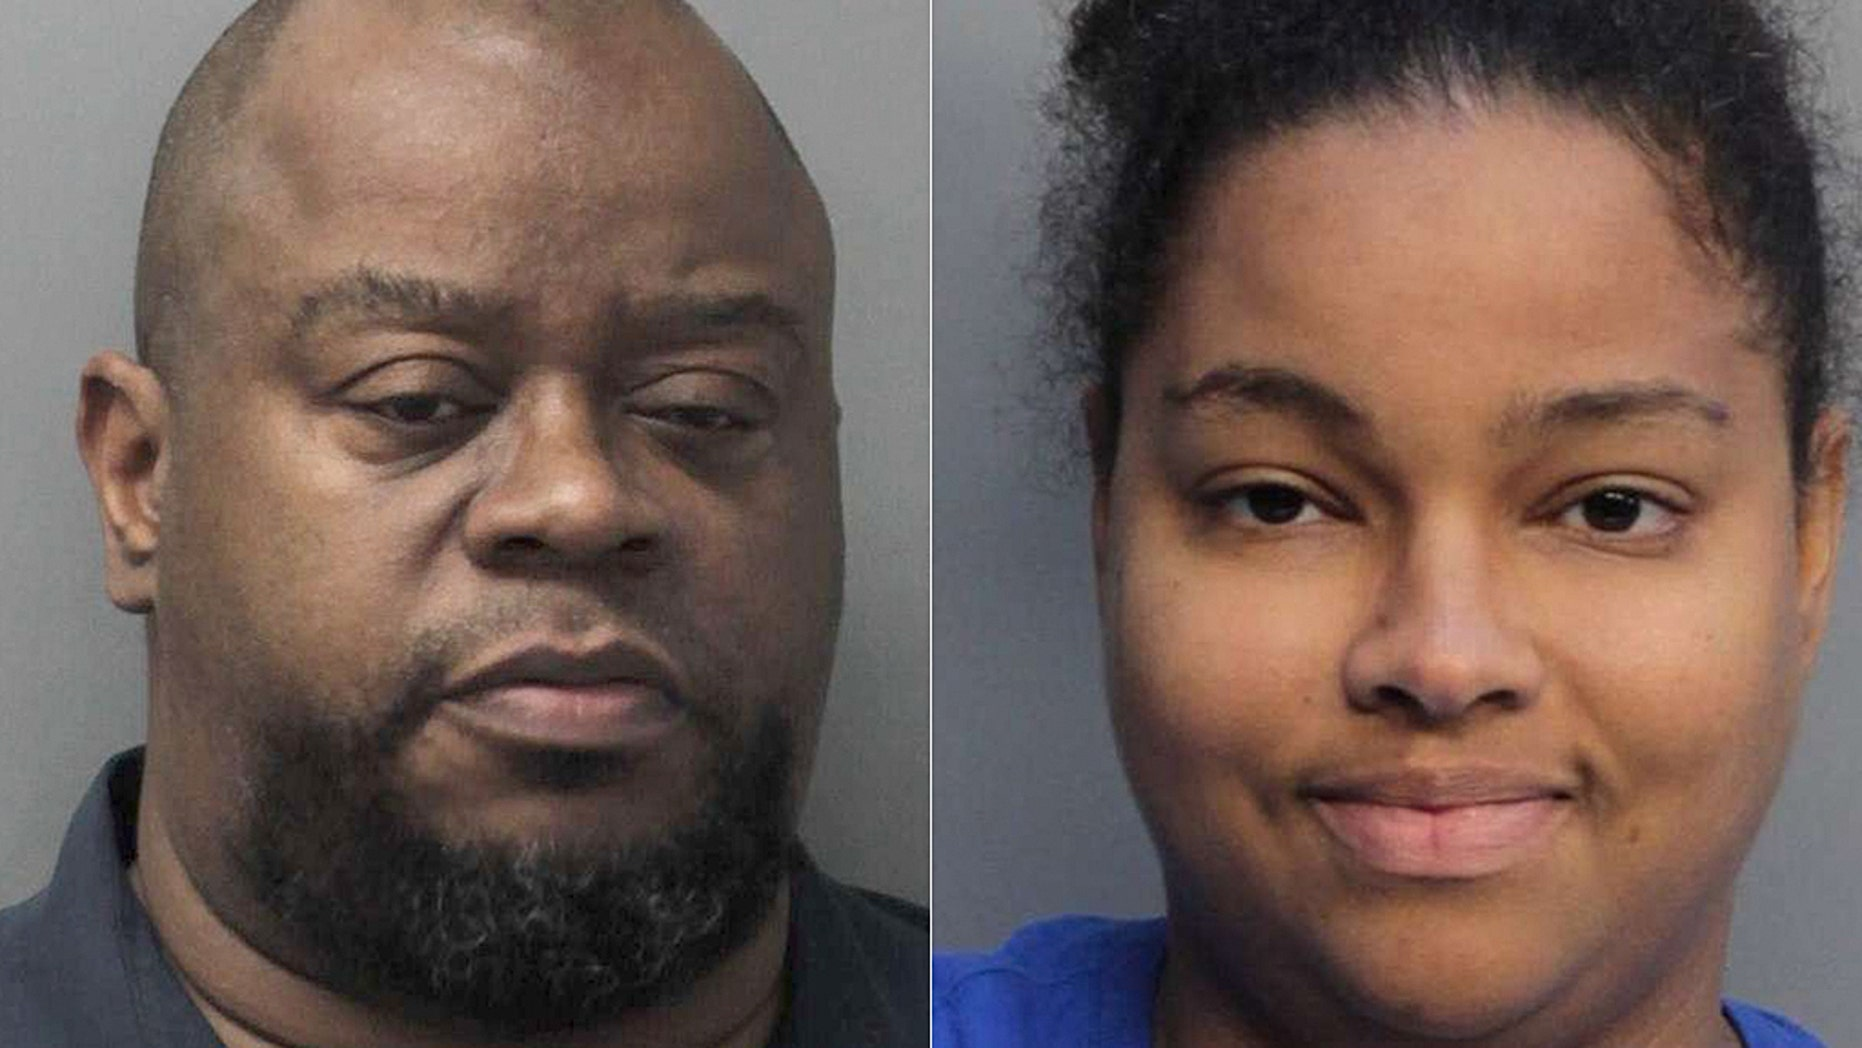 A Miami-Dade correctional officer and his wife were arrested for allegedly smuggling fast food and a cell phone into the jail for inmates, police said.